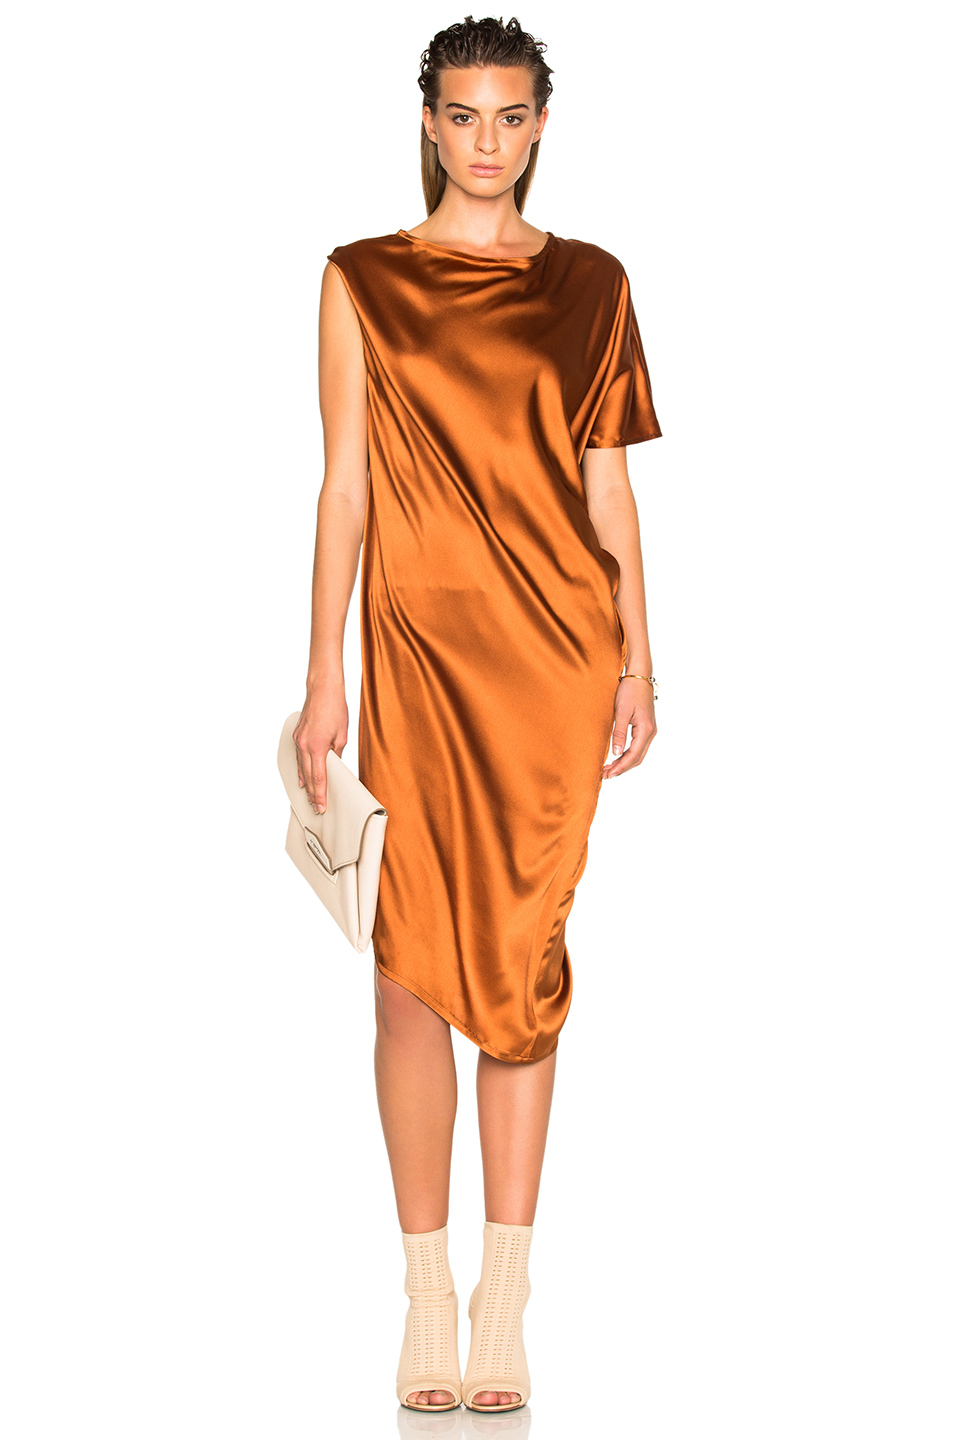 Ann Demeulemeester Drape Dress in Brown,Metallics